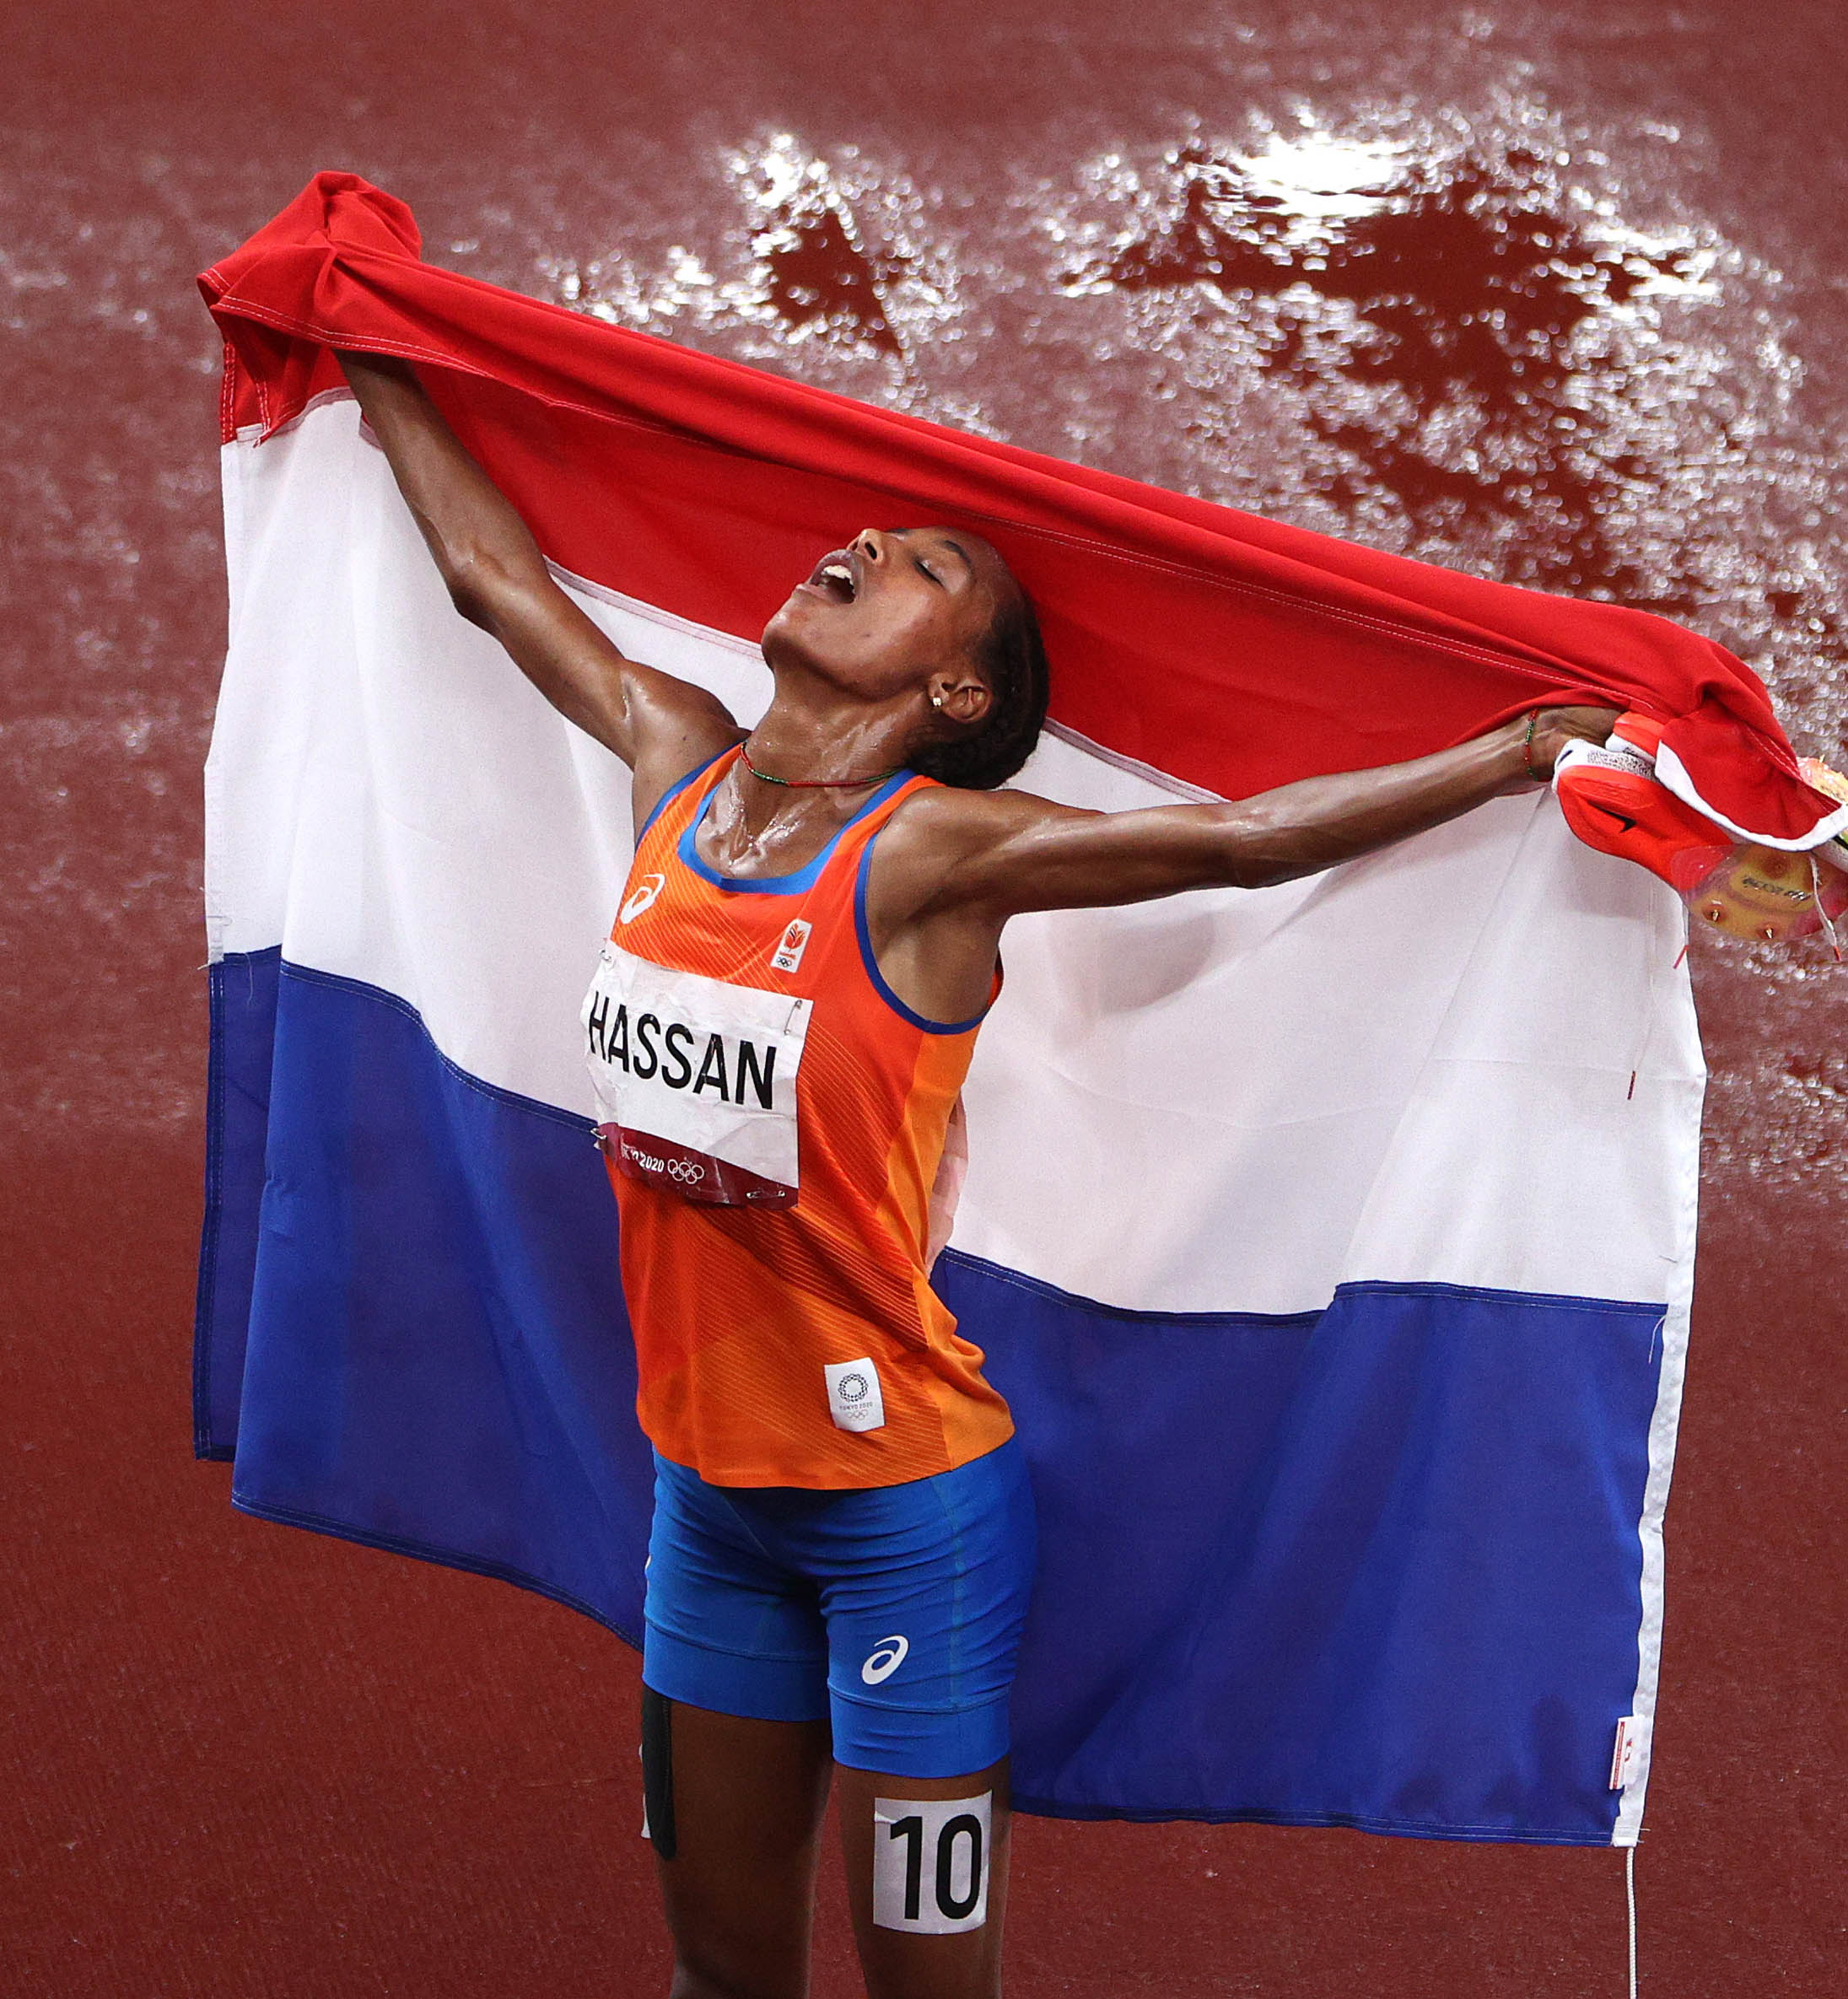 Hassan bags first gold, Kenya's steeplechase run ends